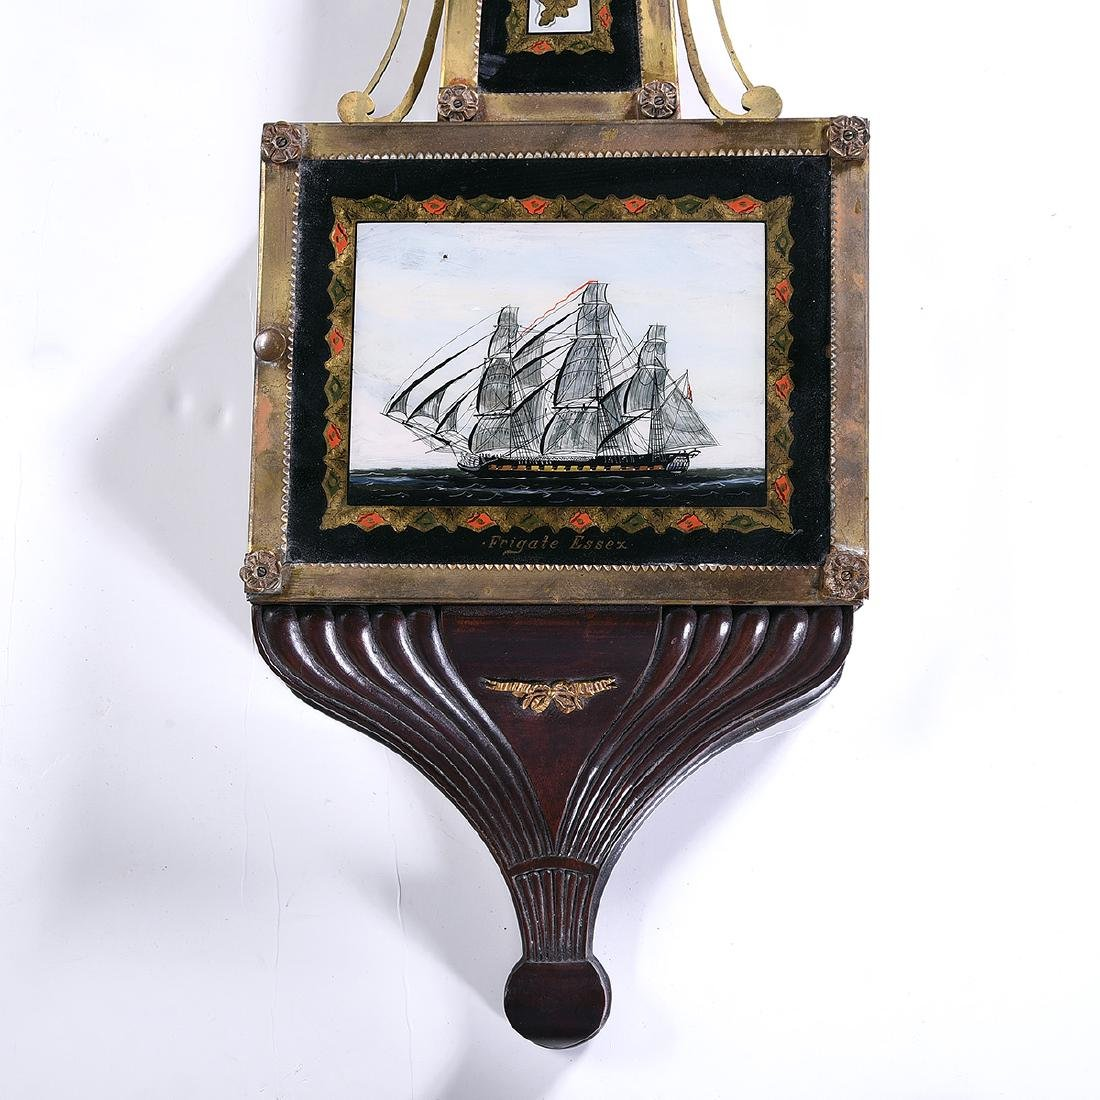 New England Banjo Clock, Inlaid with Gilt Eglomise - 2